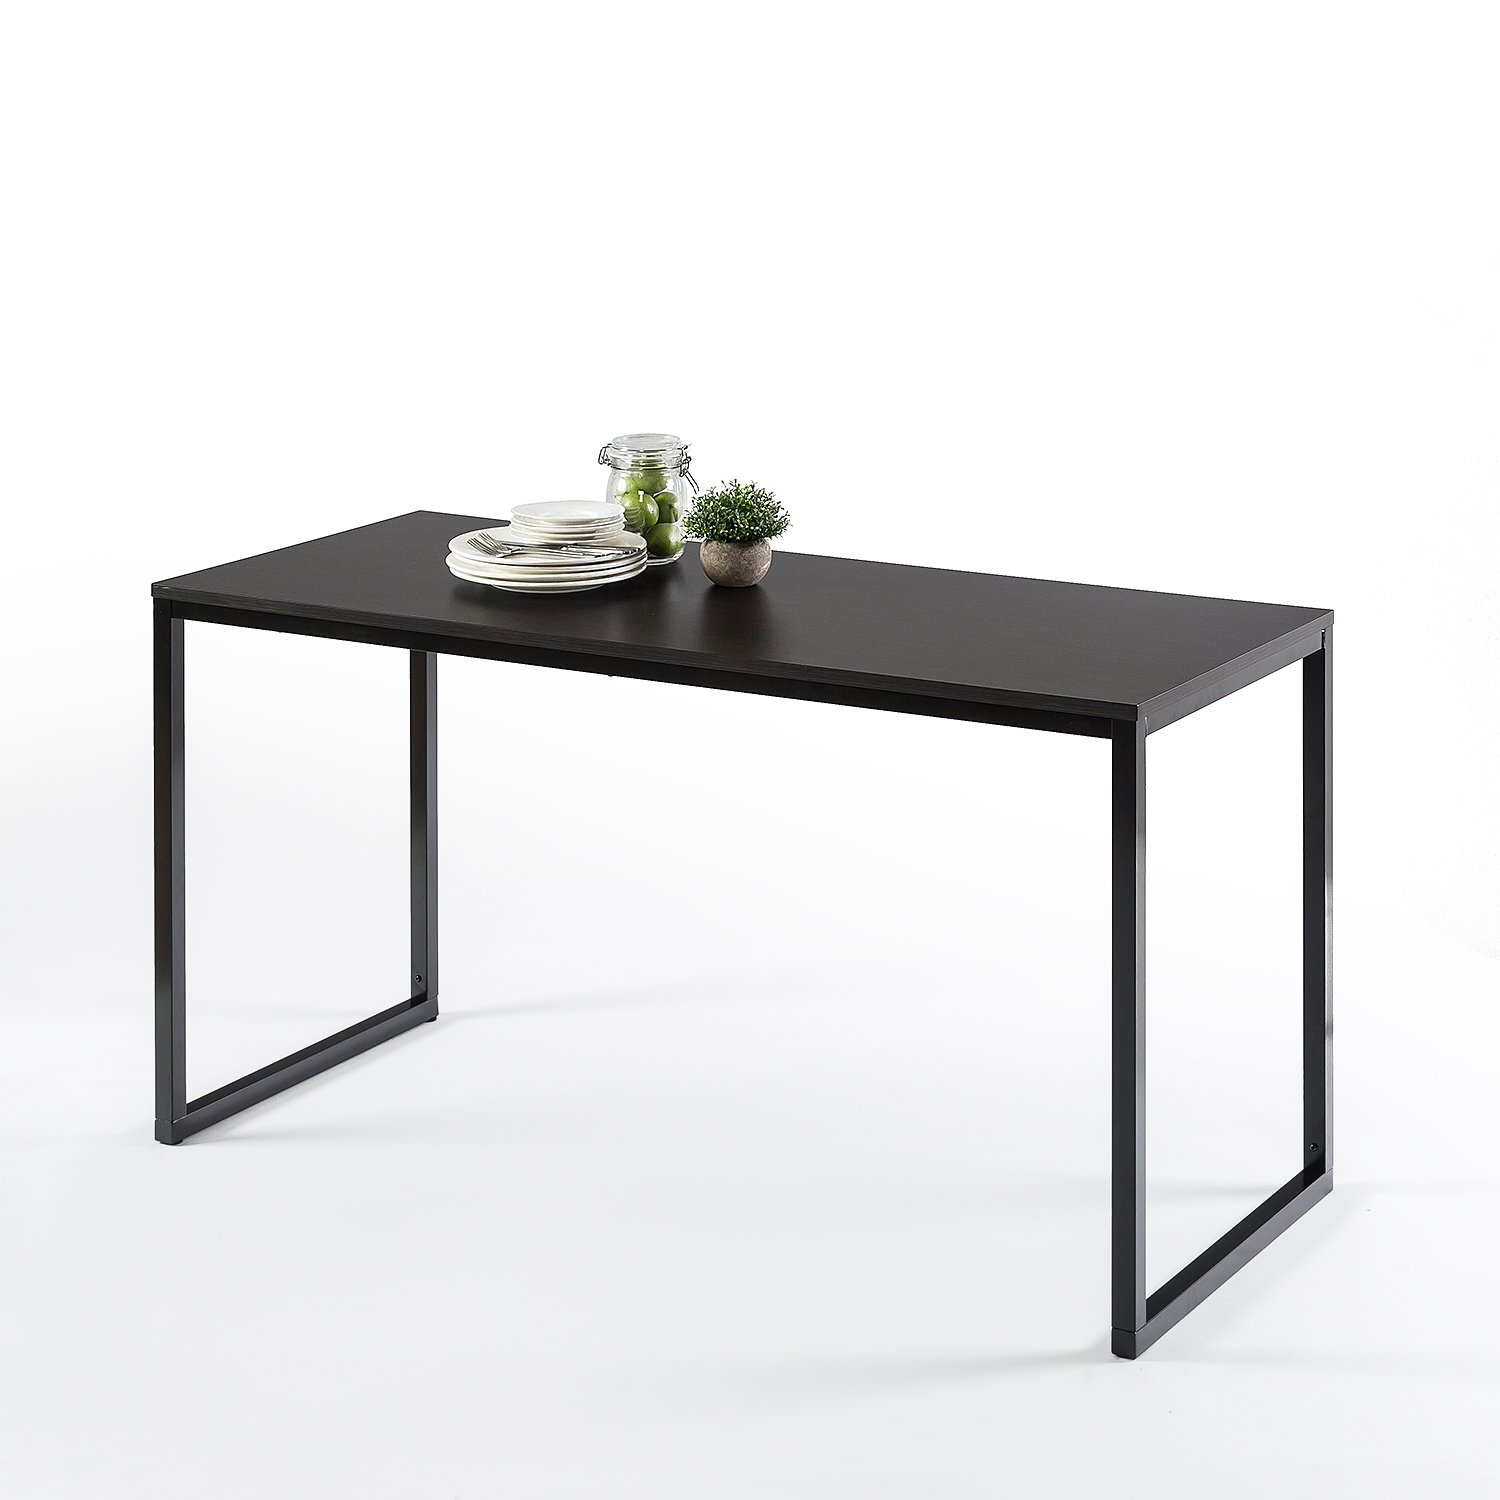 desk u ikea elegant your furniture home decoration for shaped espresso plywood l design office finish